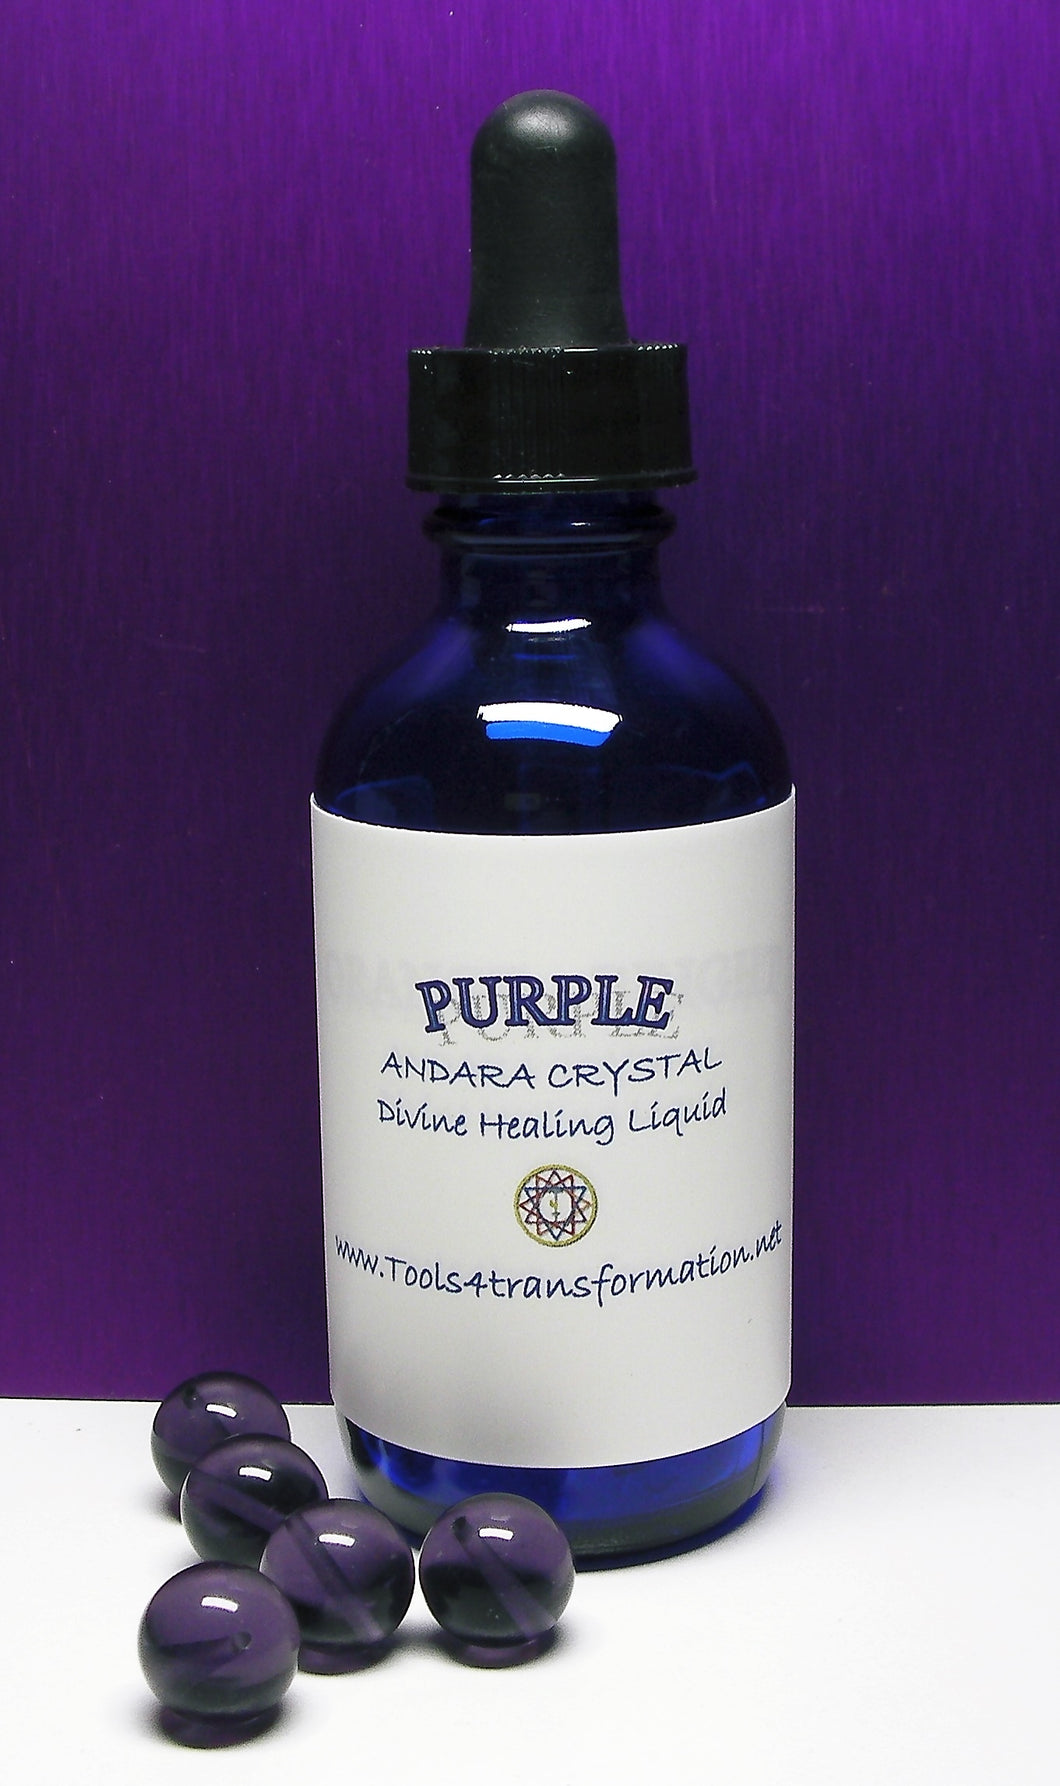 Purple Andara Crystal Liquid - Tools4transformation